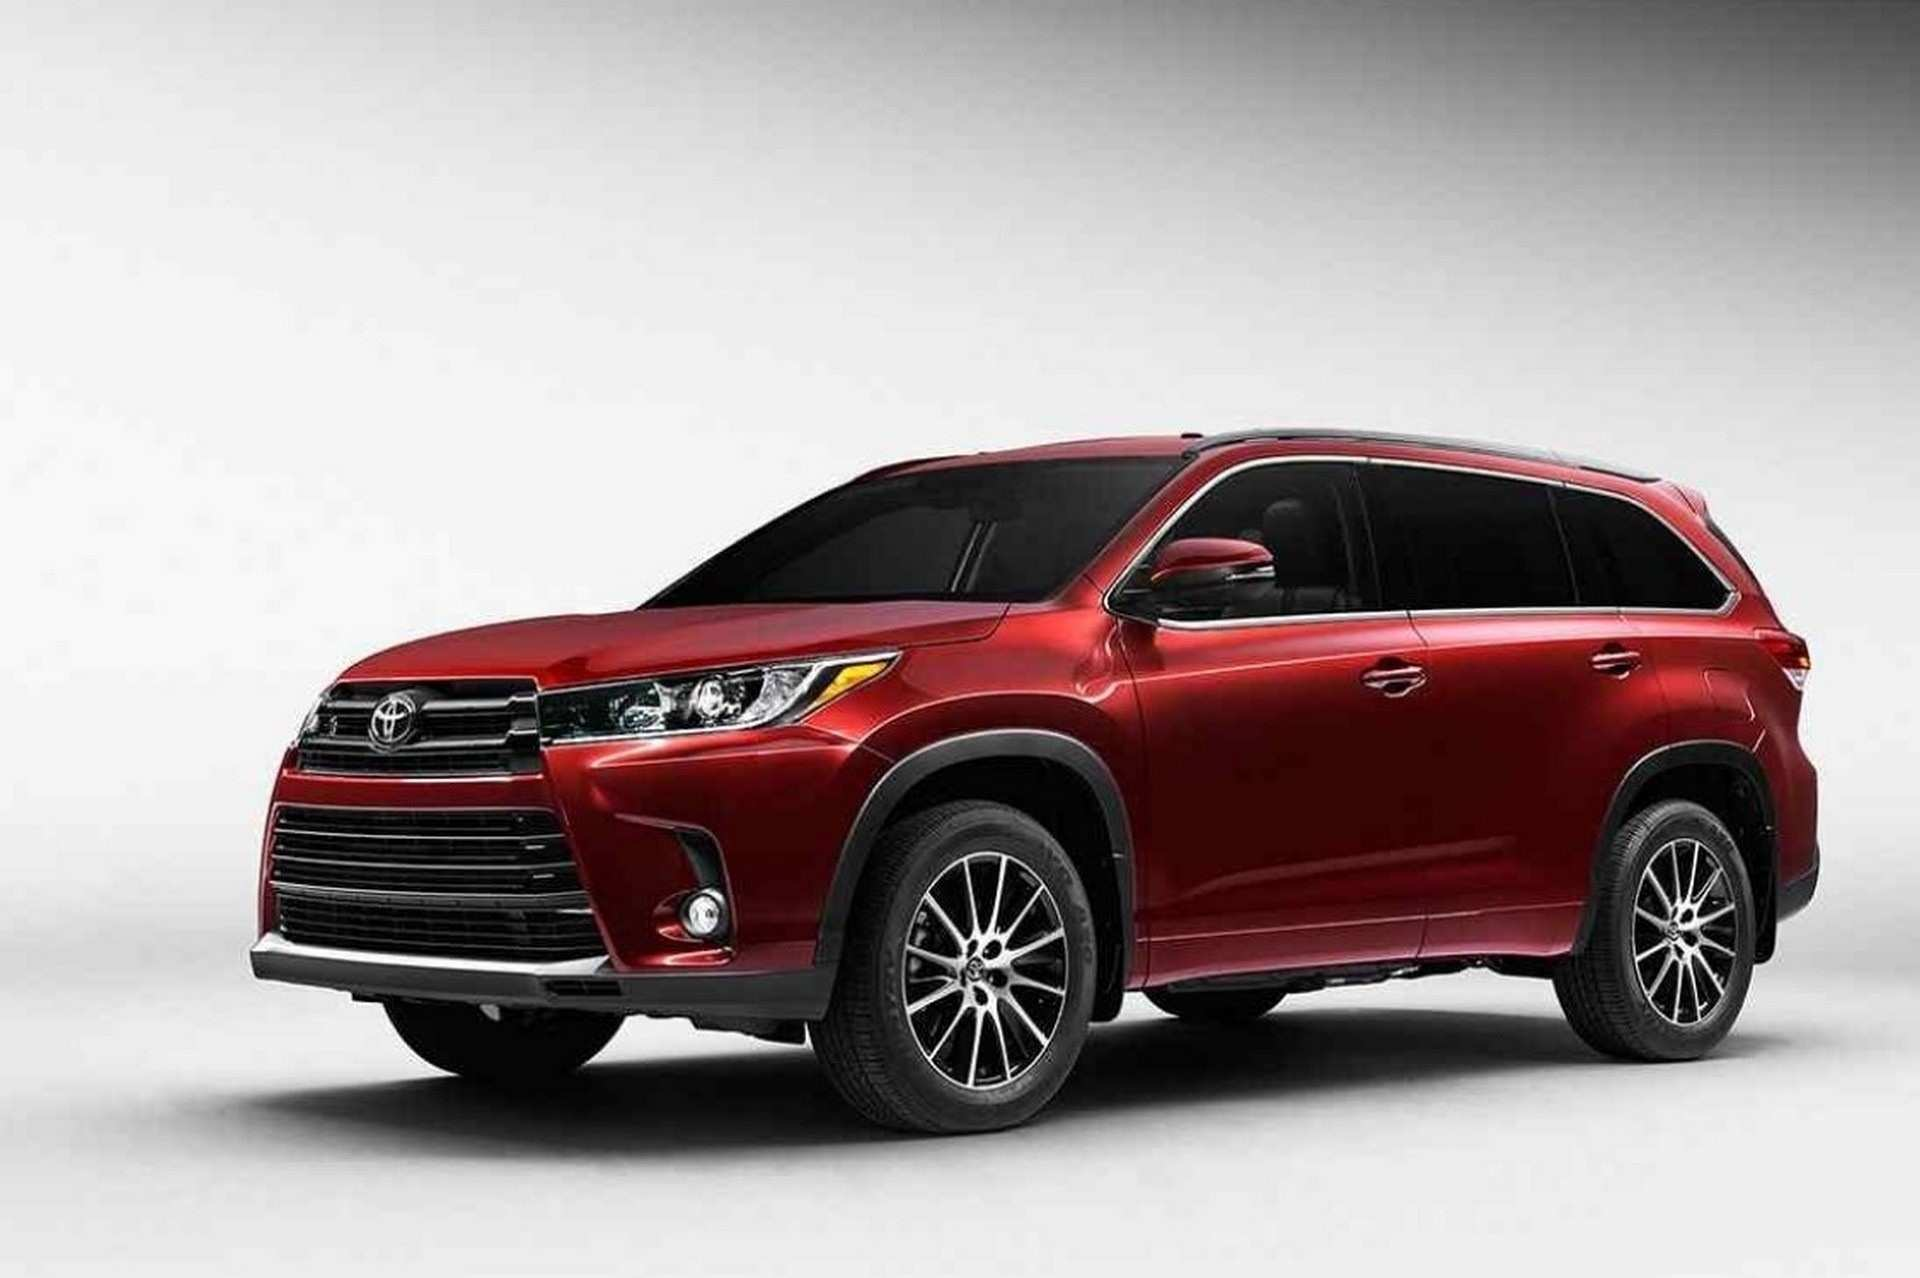 75 All New Highlander Toyota 2019 Interior Review Specs And Release Date New Review with Highlander Toyota 2019 Interior Review Specs And Release Date